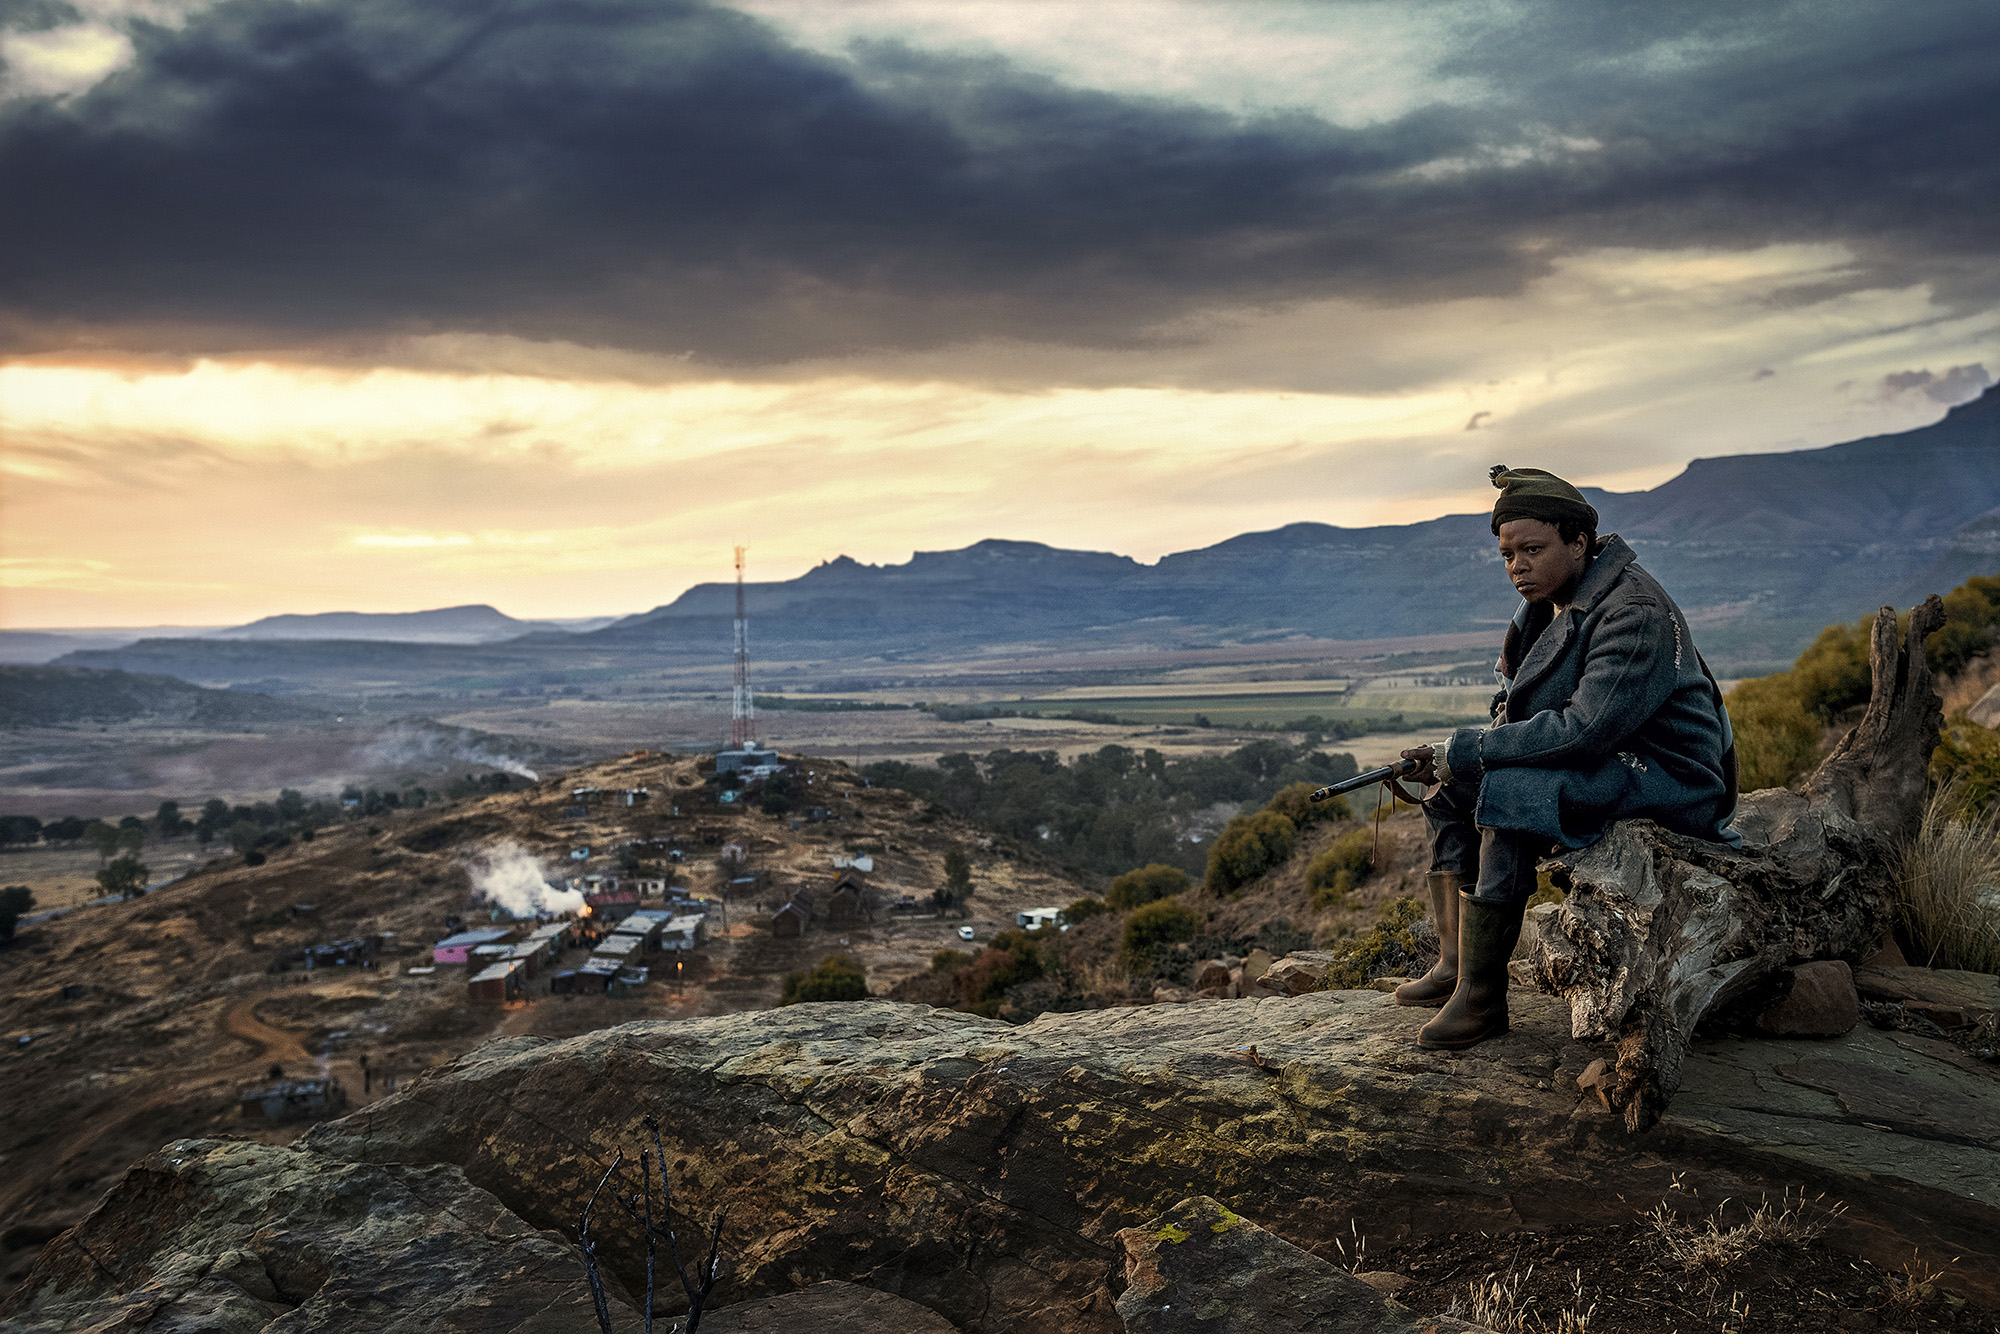 Lizwi Vilakazi as Sizwe in Five Fingers for Marseilles.